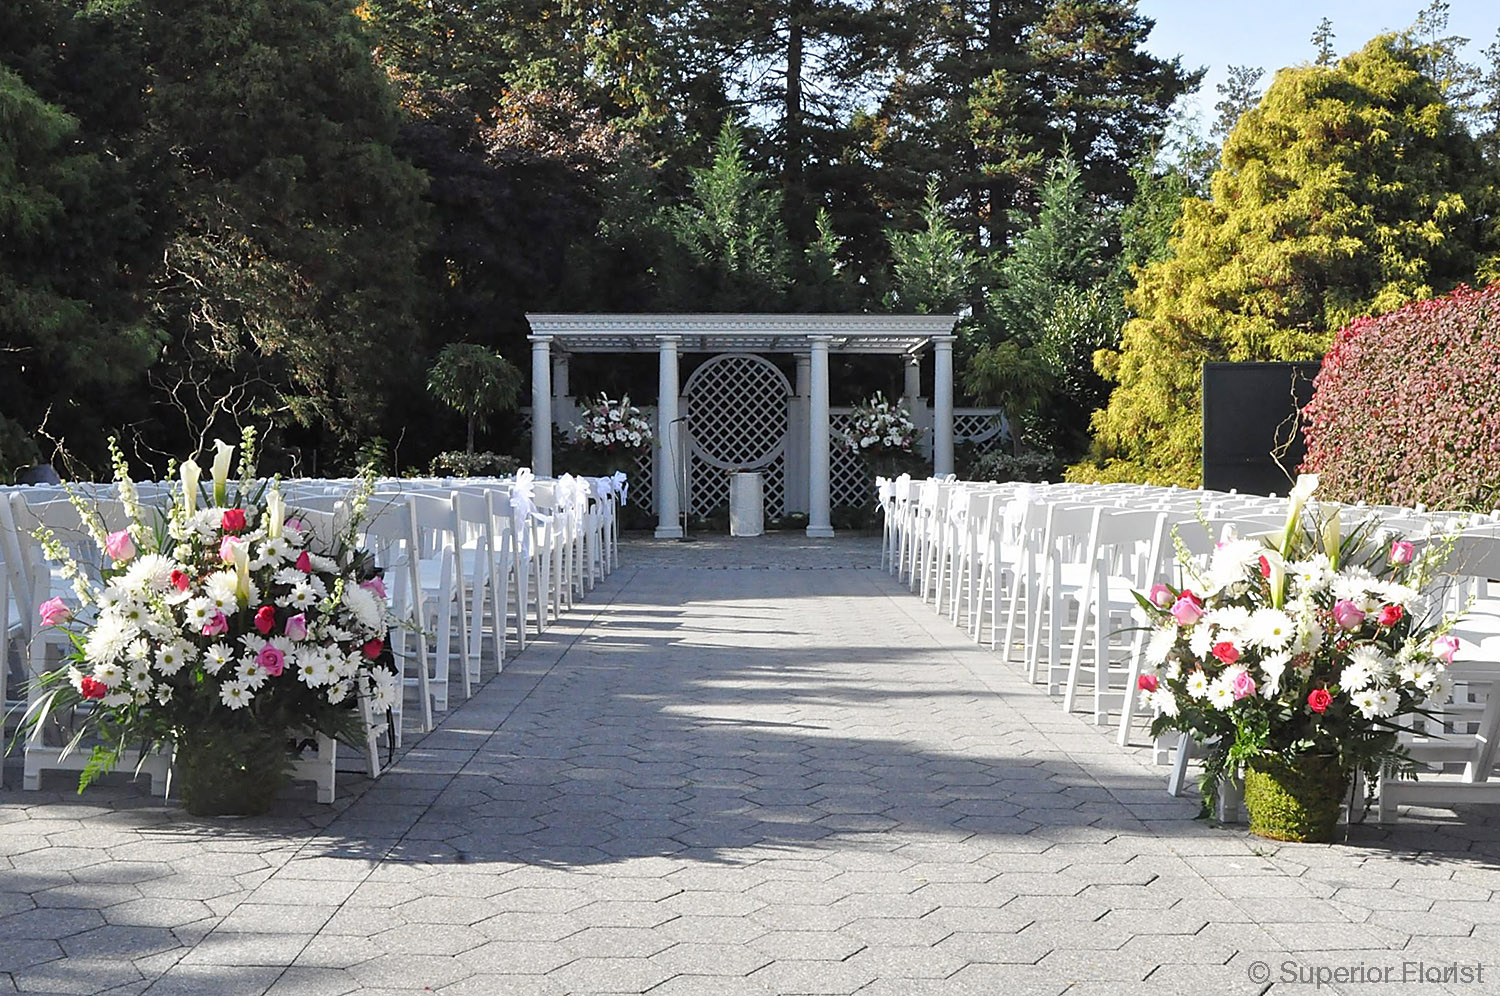 Superior Florist – Wedding Ceremony: Spring wedding ceremony outdoors at The New York Botanical Garden. Matching floral baskets in the foreground. Matching floral baskets under the gazebo in the background.